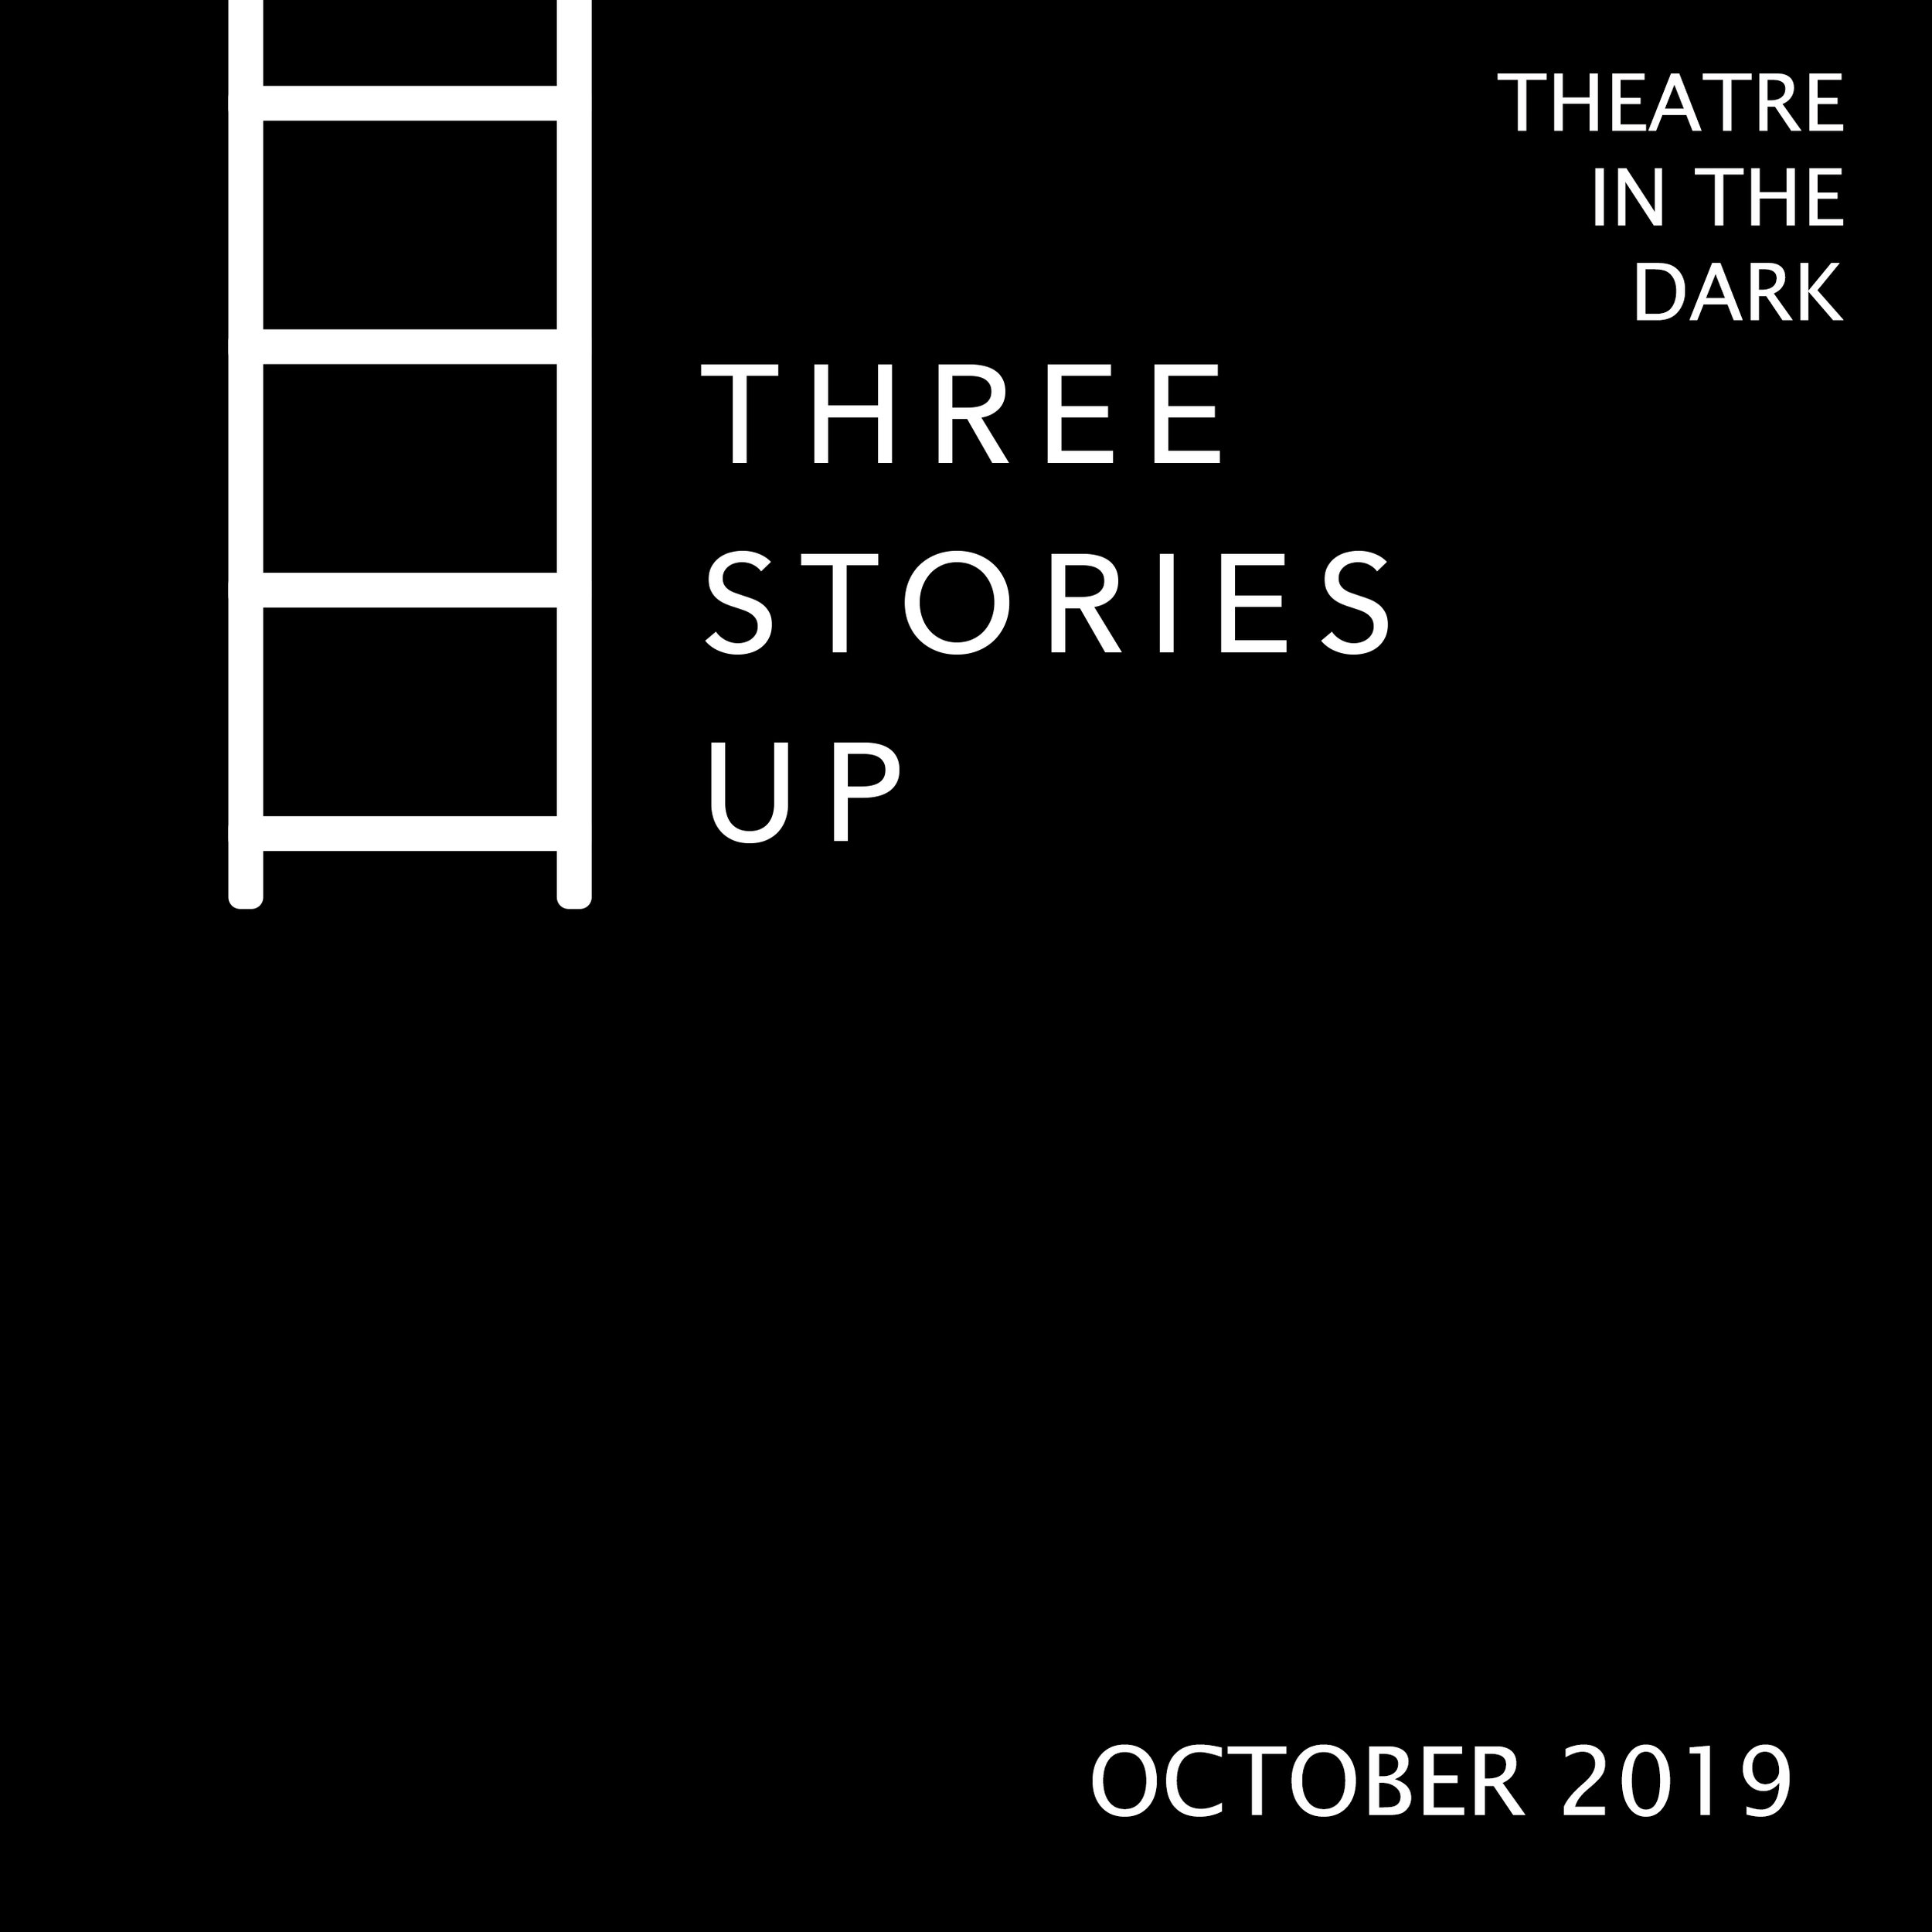 a noir mystery entirely in the dark… - You read that right. It's an in-the-dark experience you don't want to miss, coming this Halloween to Chicago.